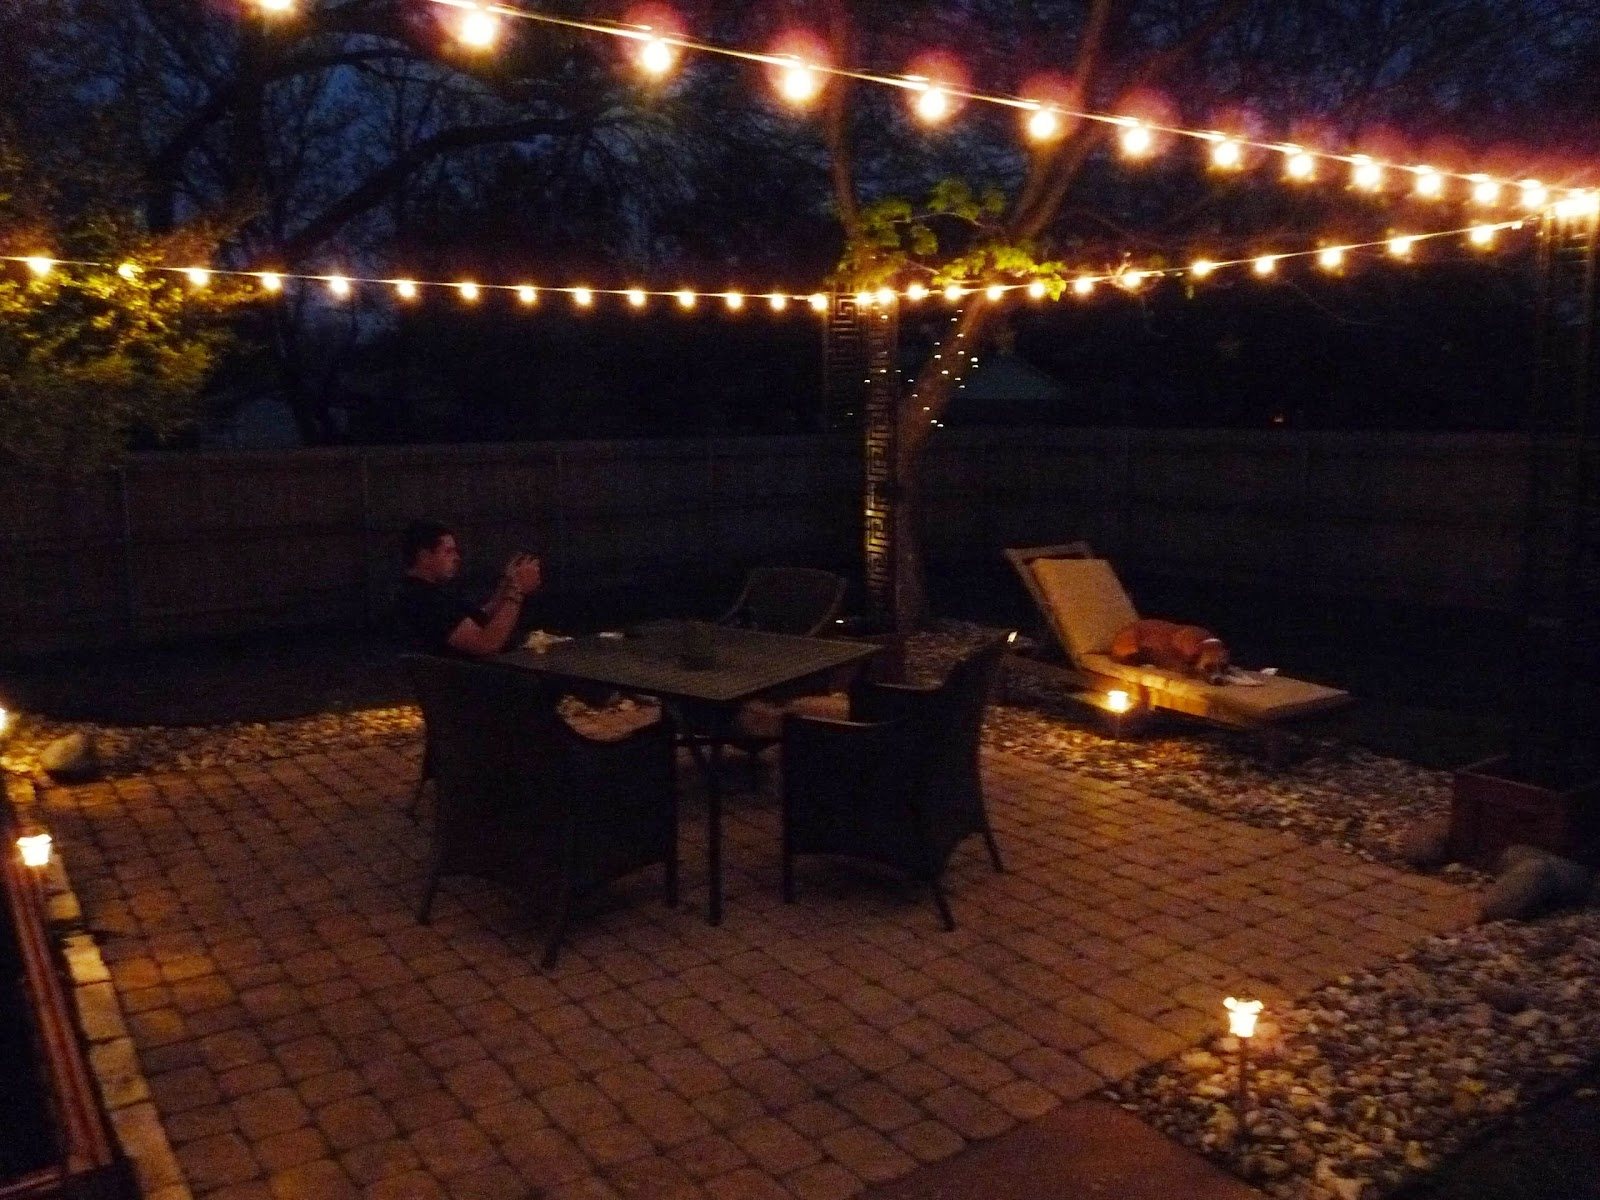 Wonderful Hanging Patio Lights Bright Diy Outdoor String With Light Intended For Diy Outdoor Hanging Lights (#15 of 15)